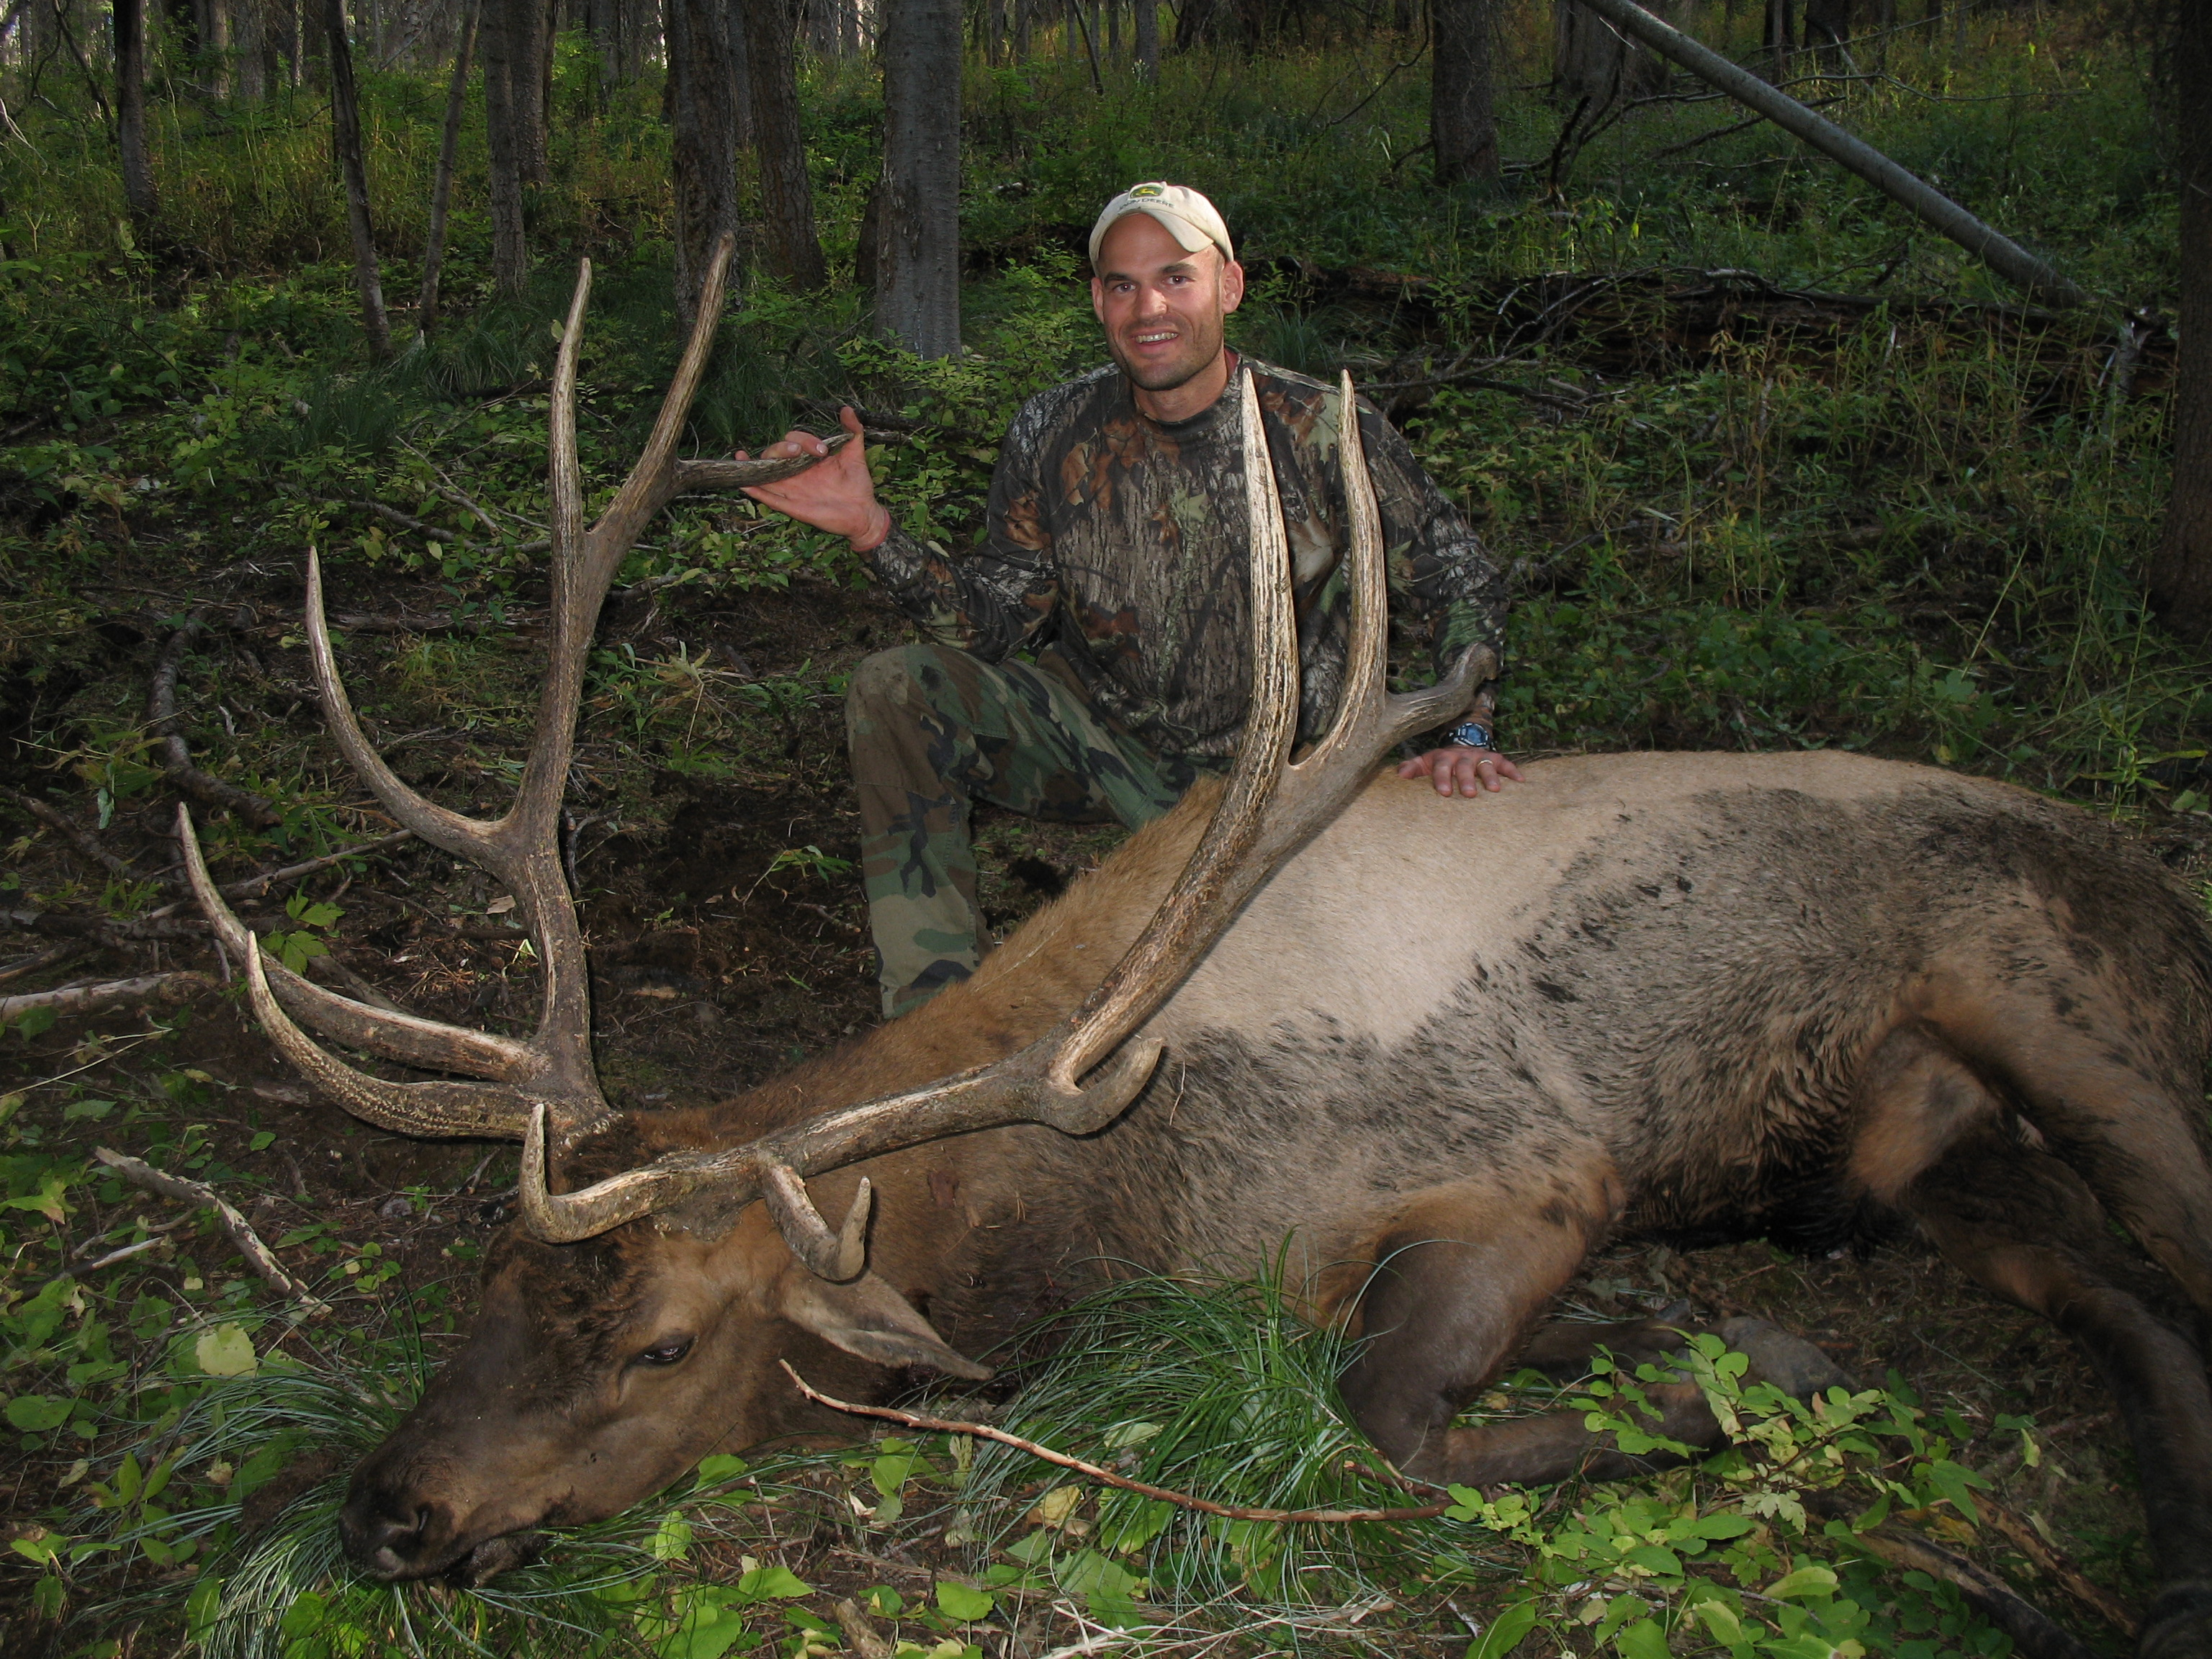 6X6 elk Matt took in 2010